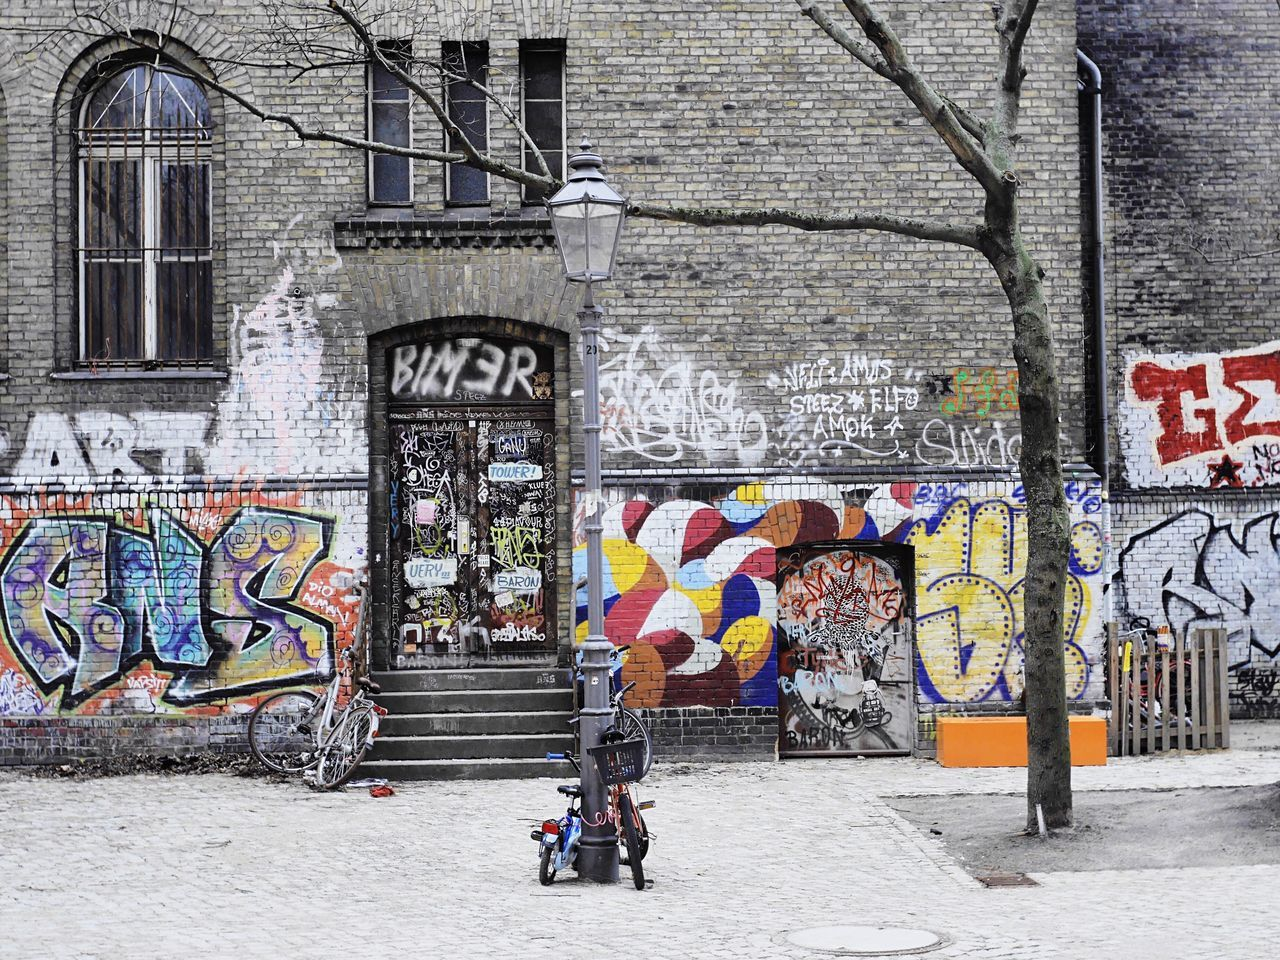 Architecture Built Structure Lifestyles Multi Colored Building Exterior City City Life Outdoors Bicycle Day Brick Building Facade Building Berlin Berlin Photography Berlin, Germany  Kreuzberg